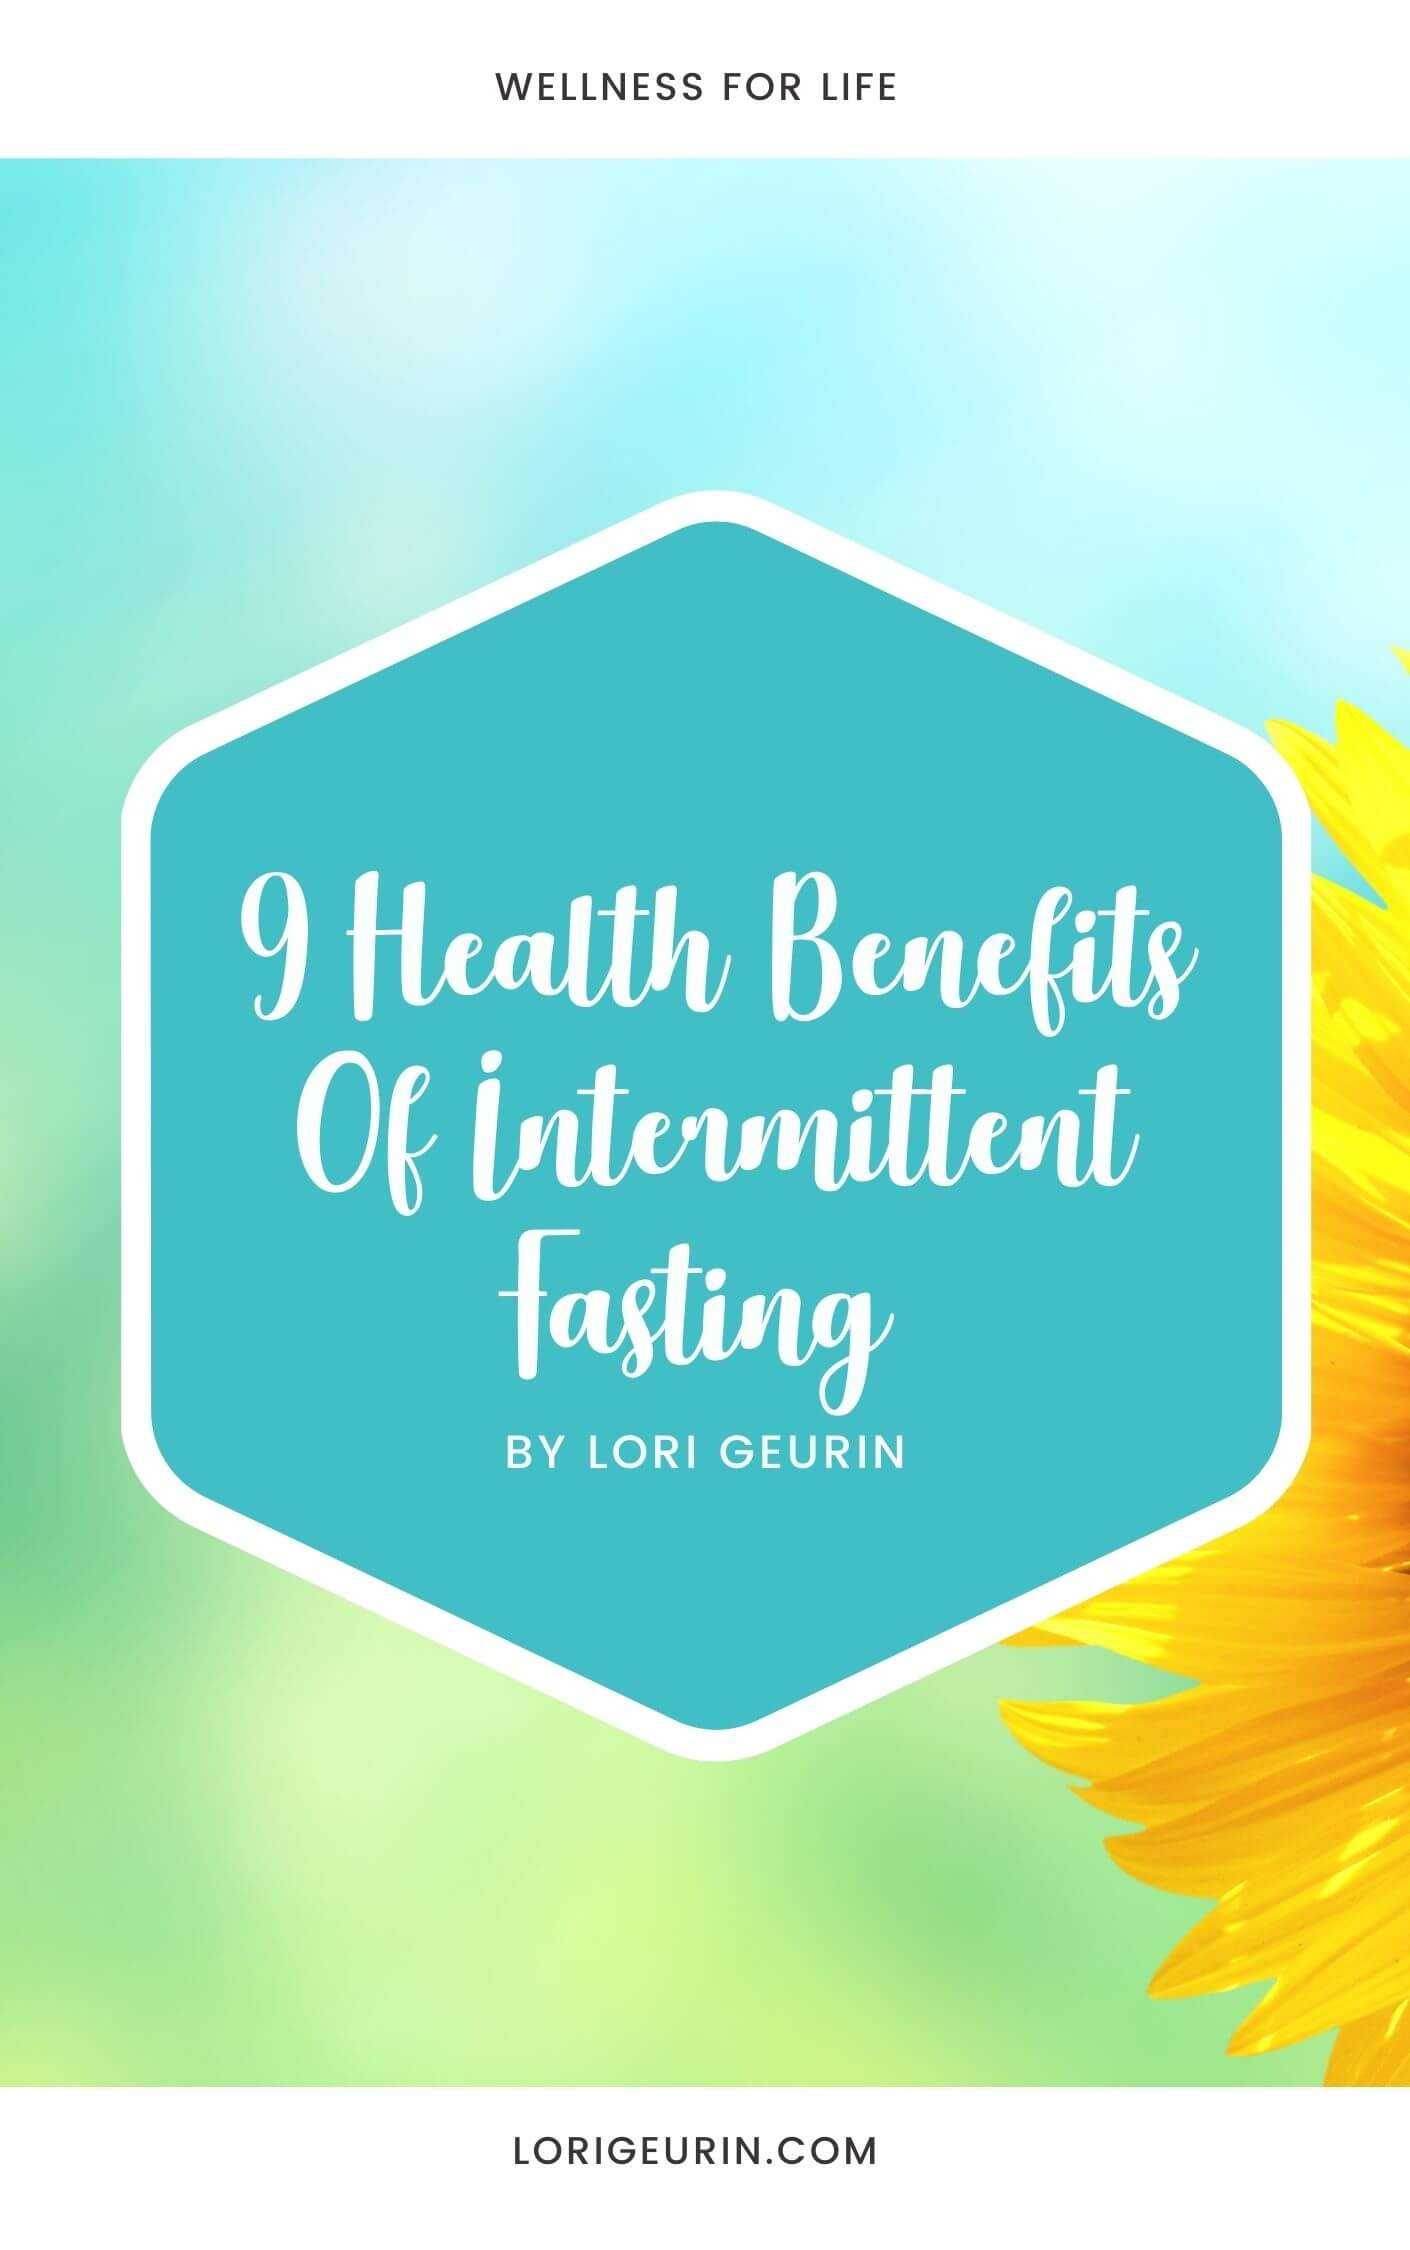 9 health benefits of intermittent fasting